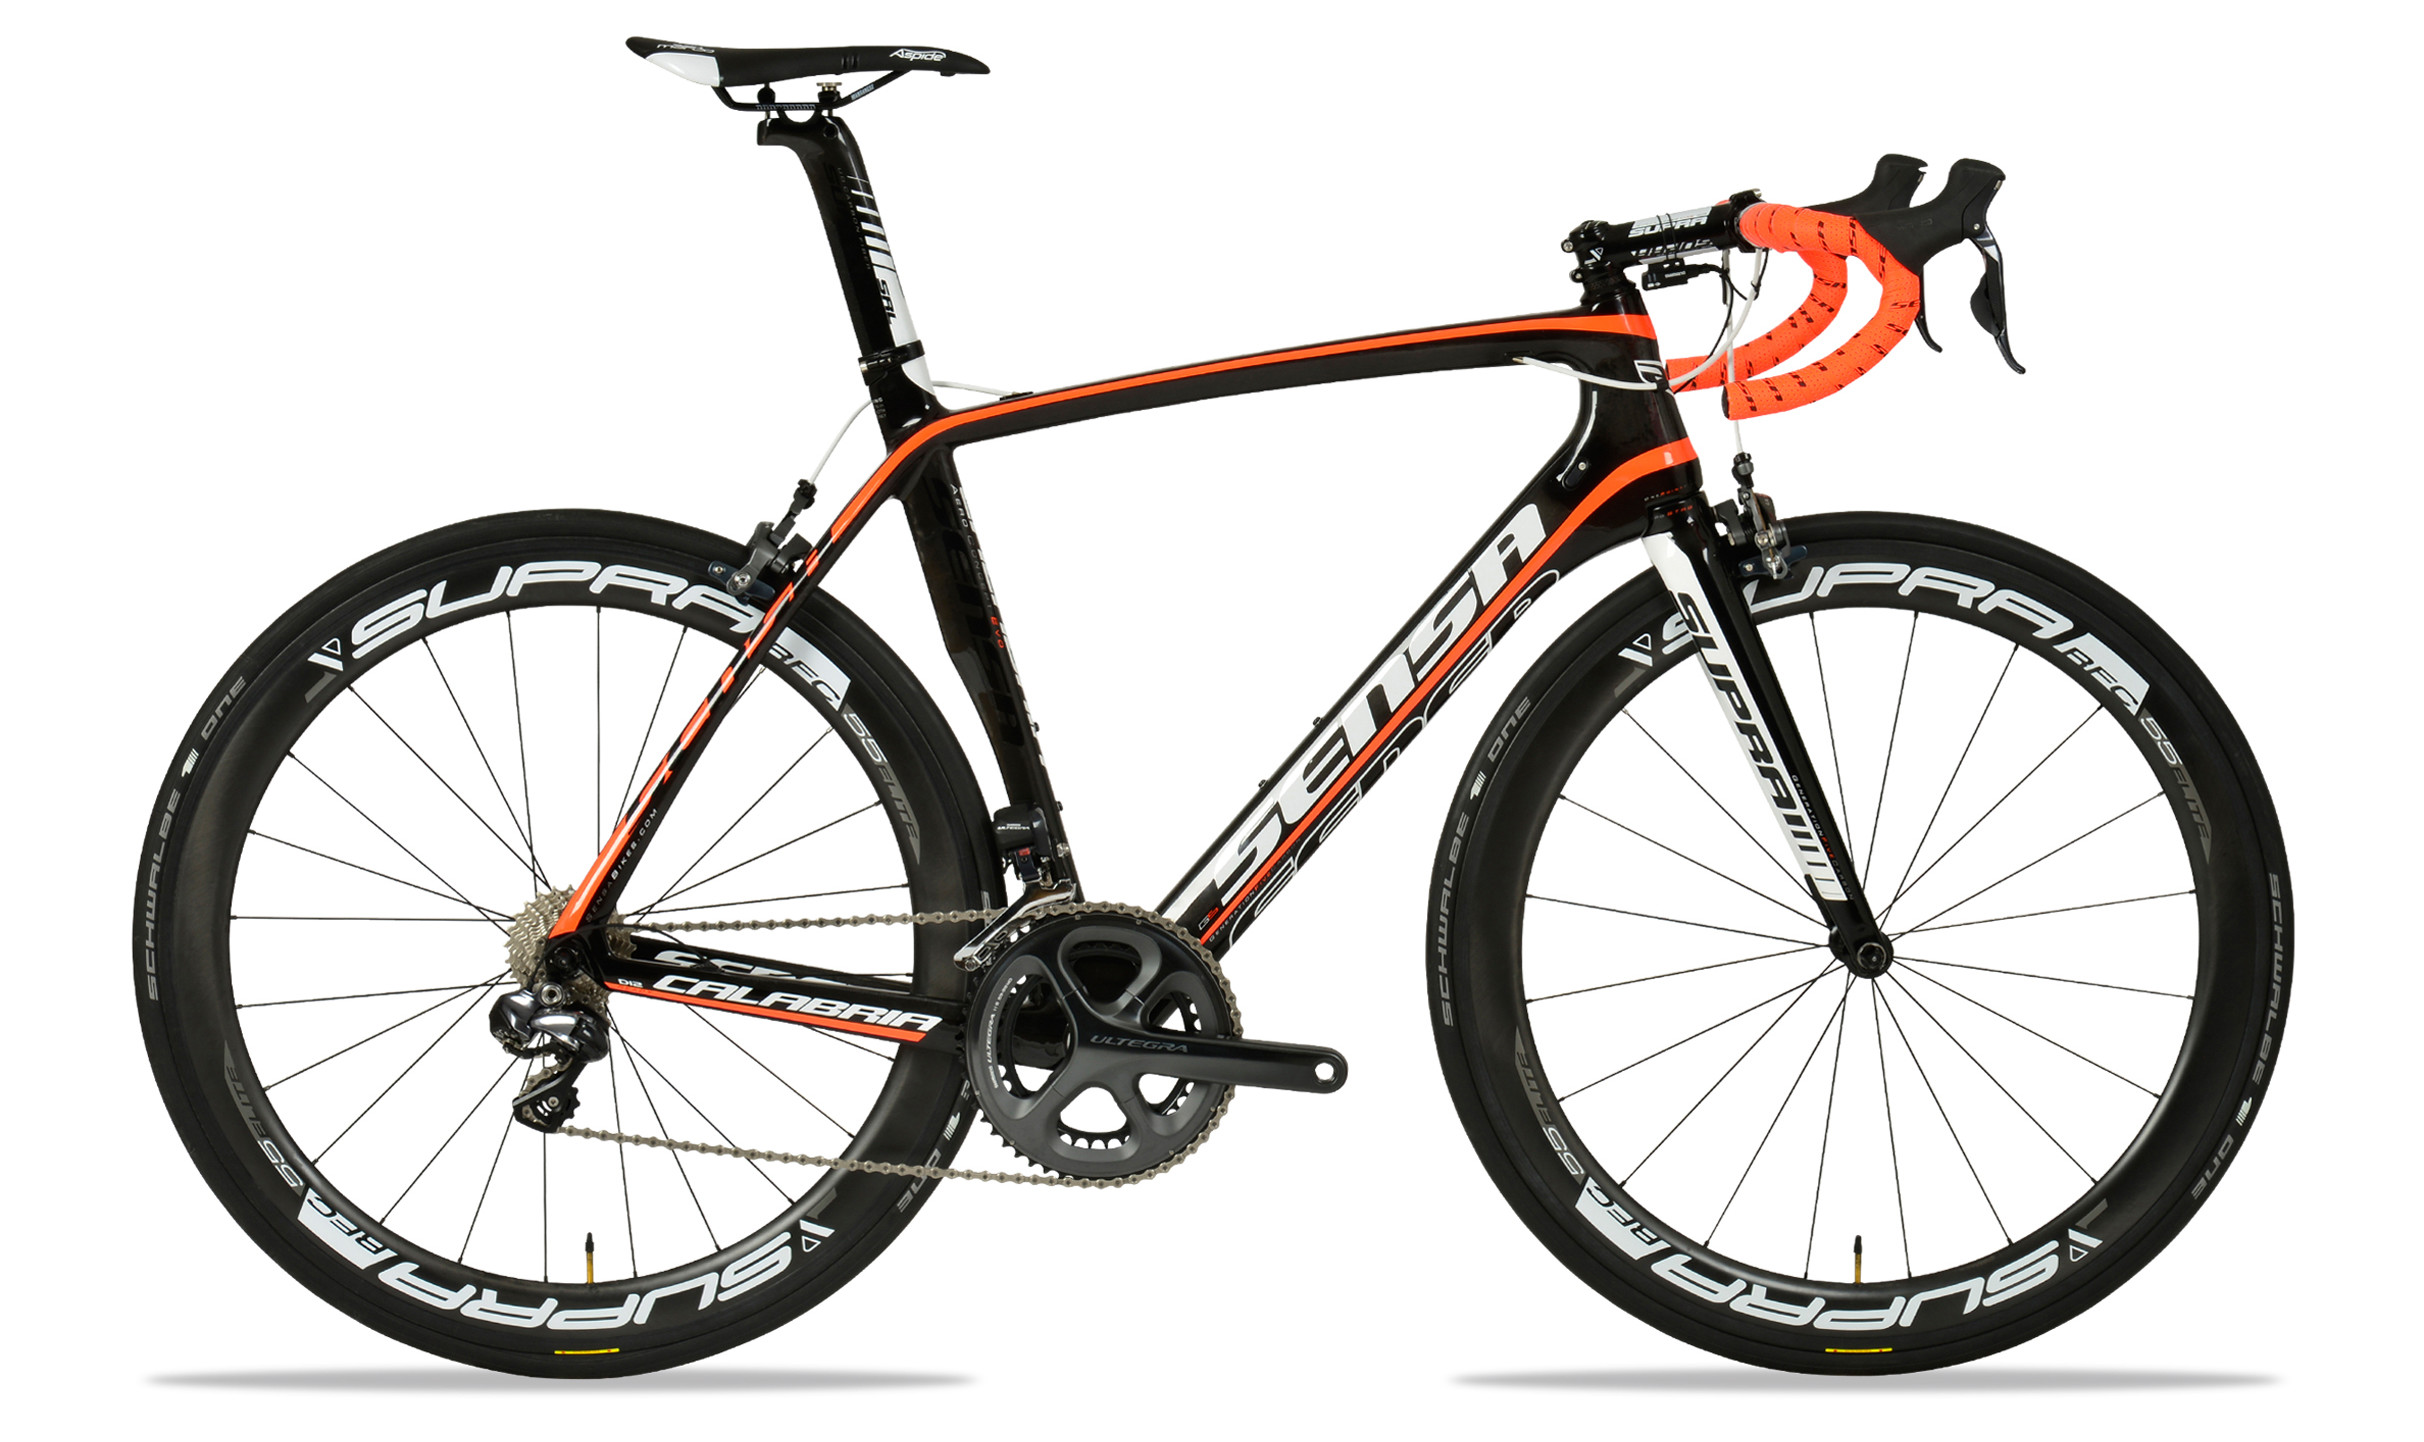 16676_sensa_calabria_custom_road_bike_dura_ace_2x11_di2_2015